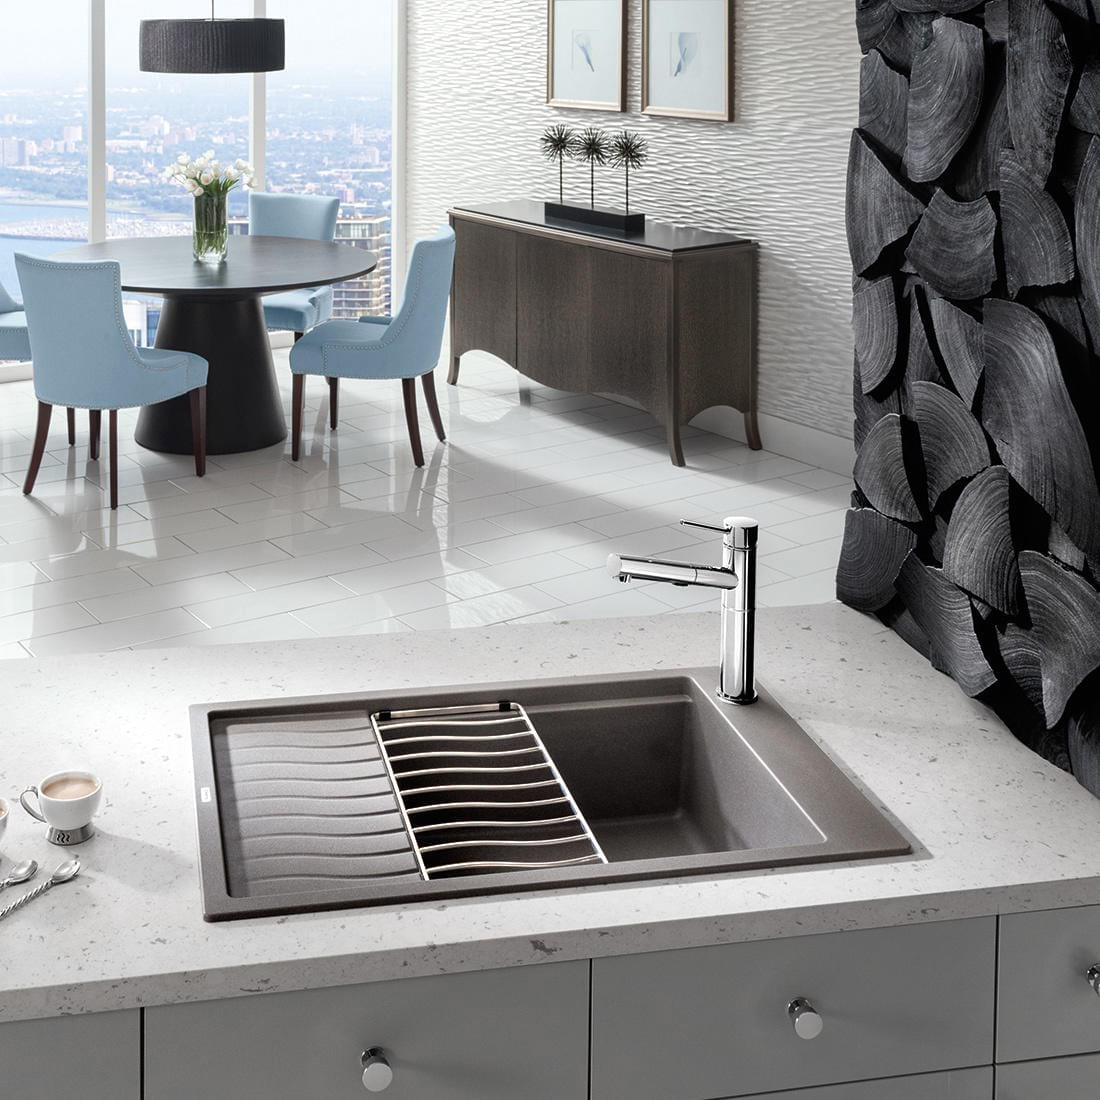 Granite Sinks Everything You Need To Know Qualitybath